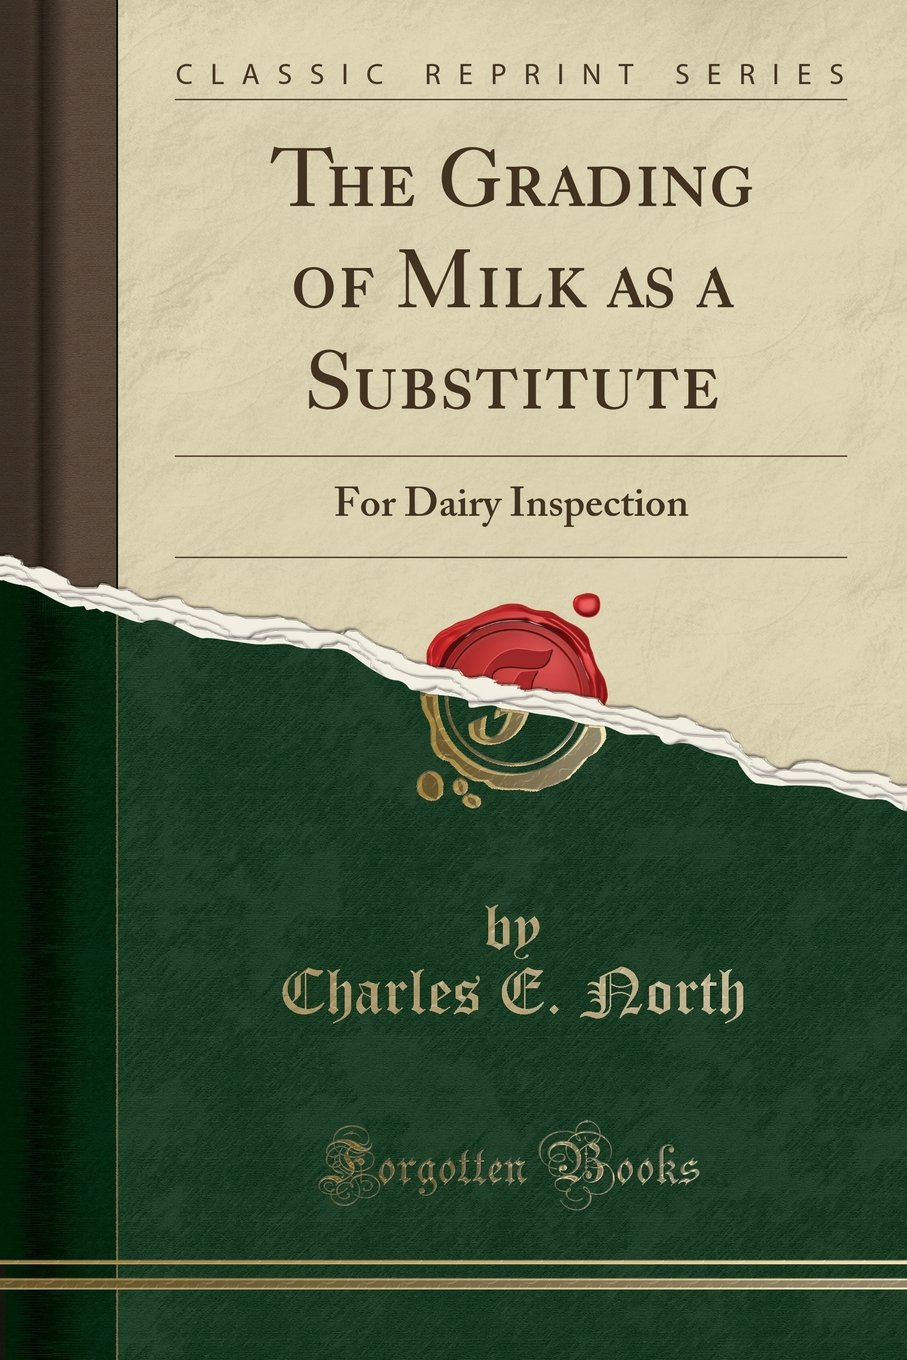 The Grading of Milk as a Substitute: For Dairy Inspection (Classic Reprint) PDF